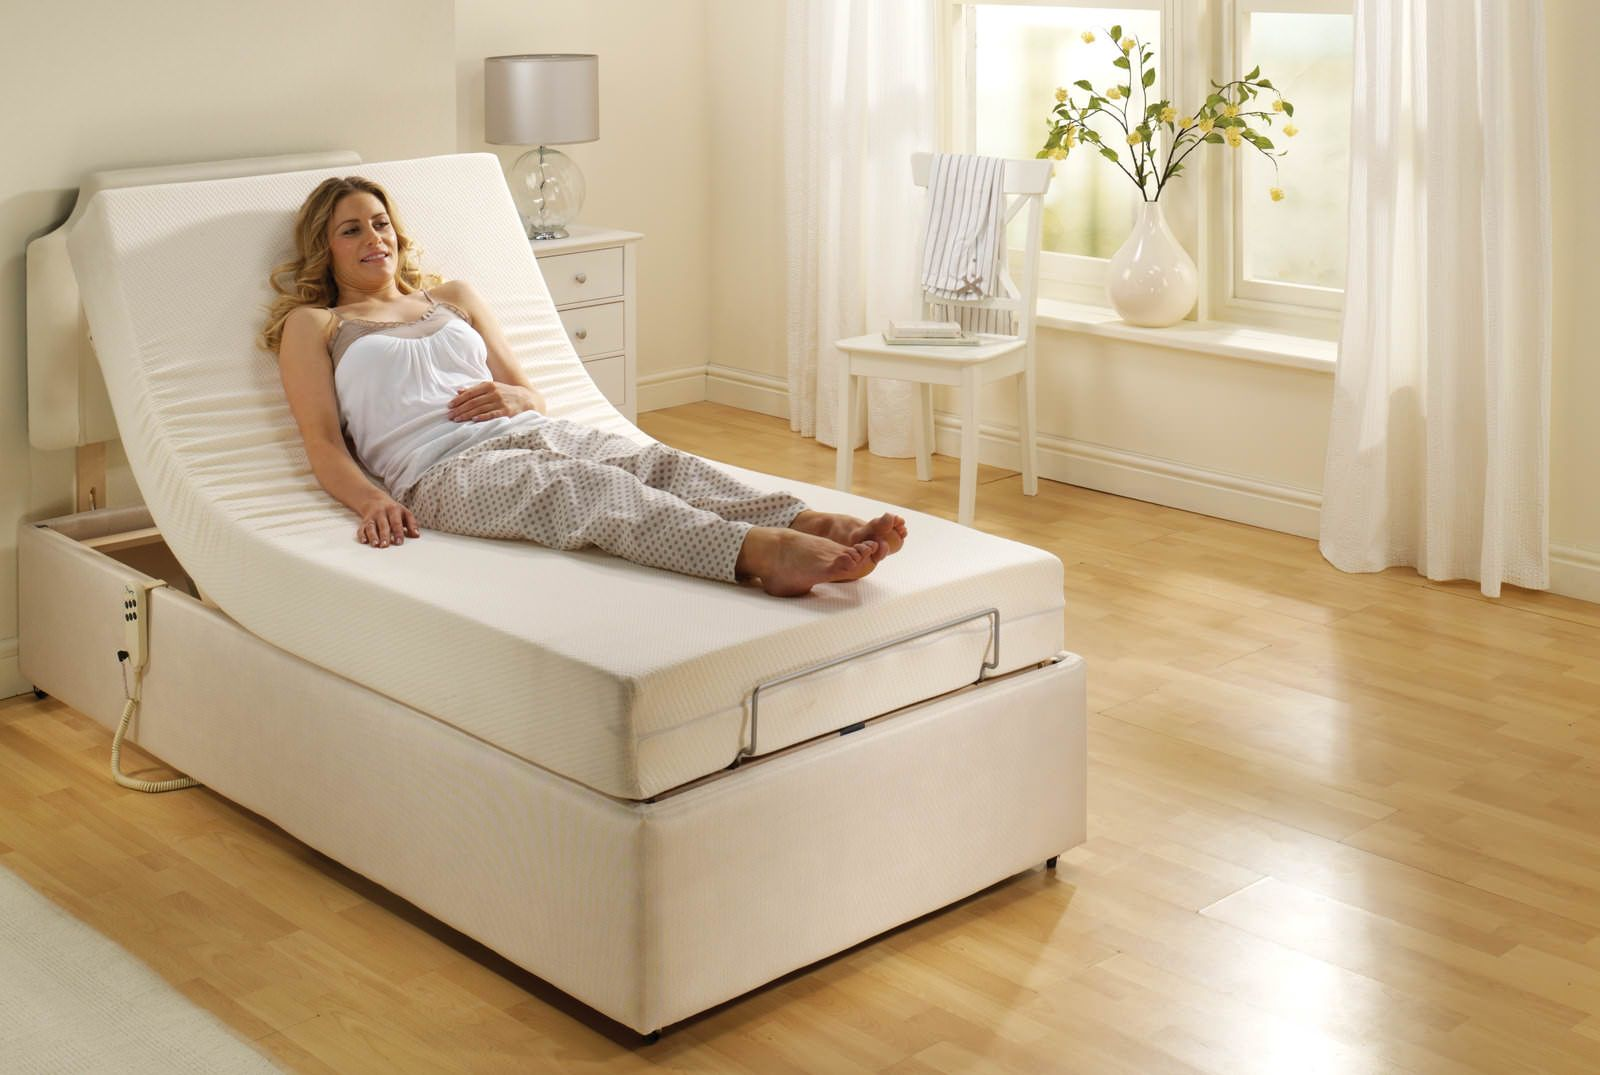 amusing for frame size are sleep ideas queen how craftmatic sale furniture tufted cheap costco headboard adjustable much mattresses h split science upholstered beds king mattress bedroom bed